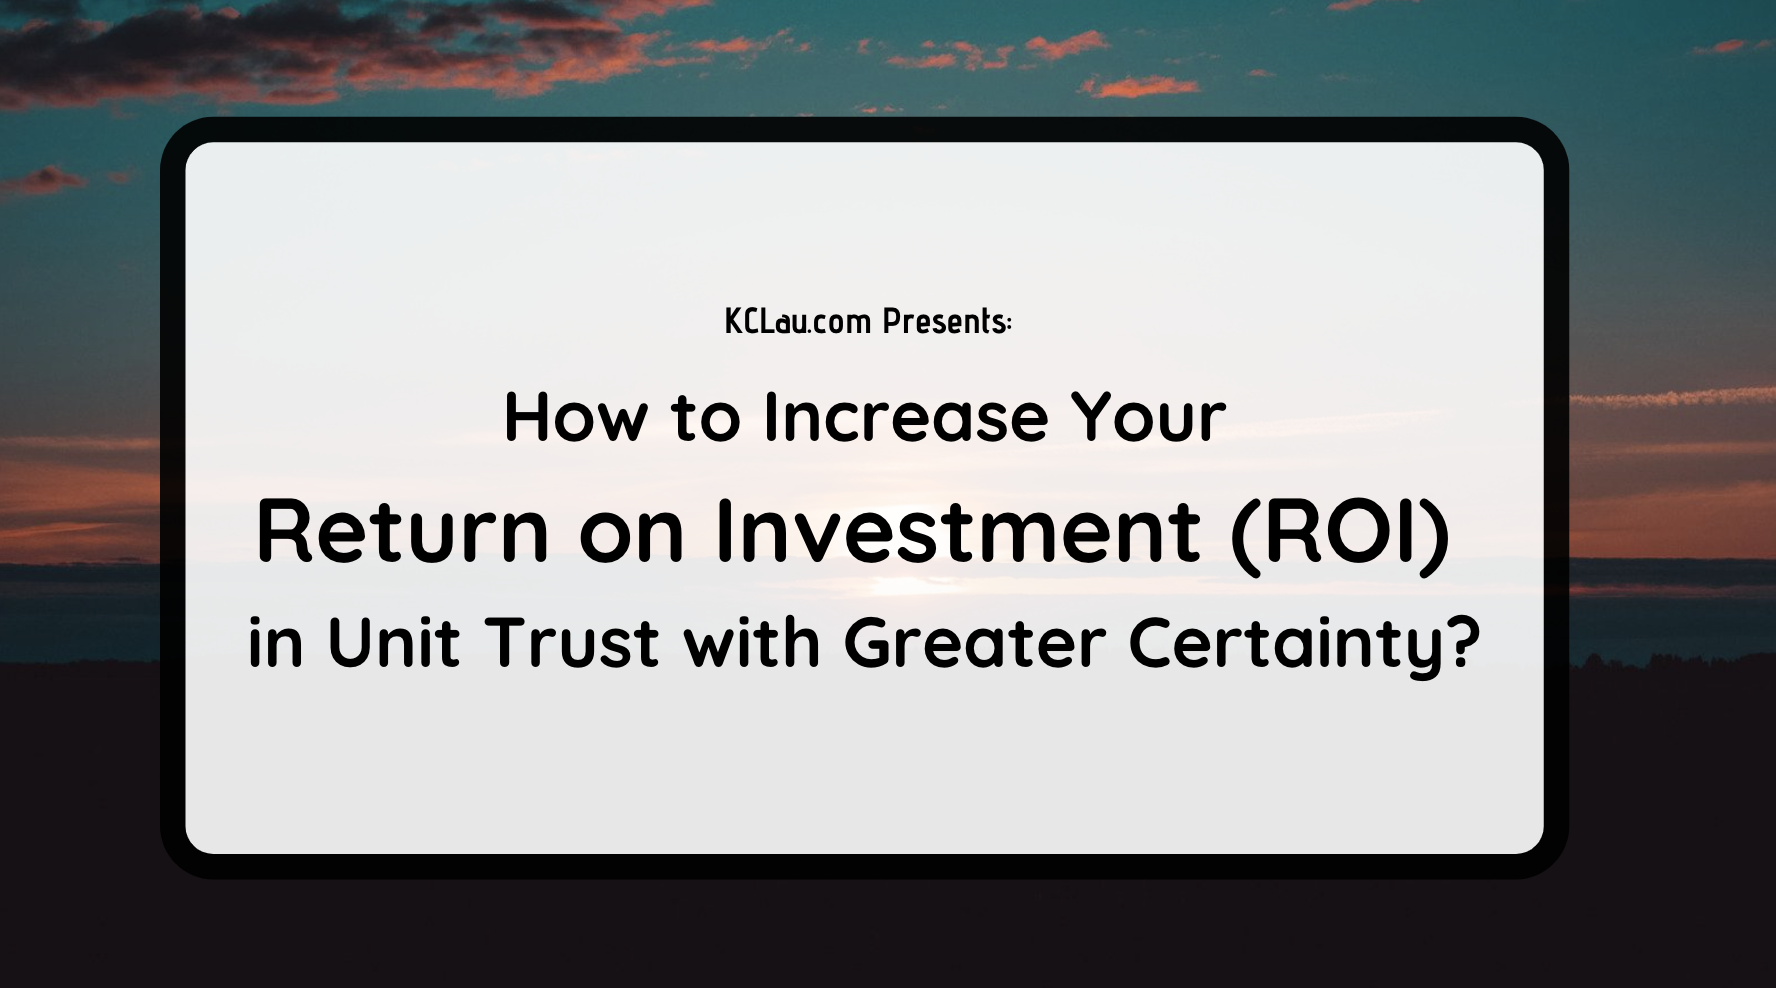 How to Increase Your ROI in Unit Trust with Higher Certainty?